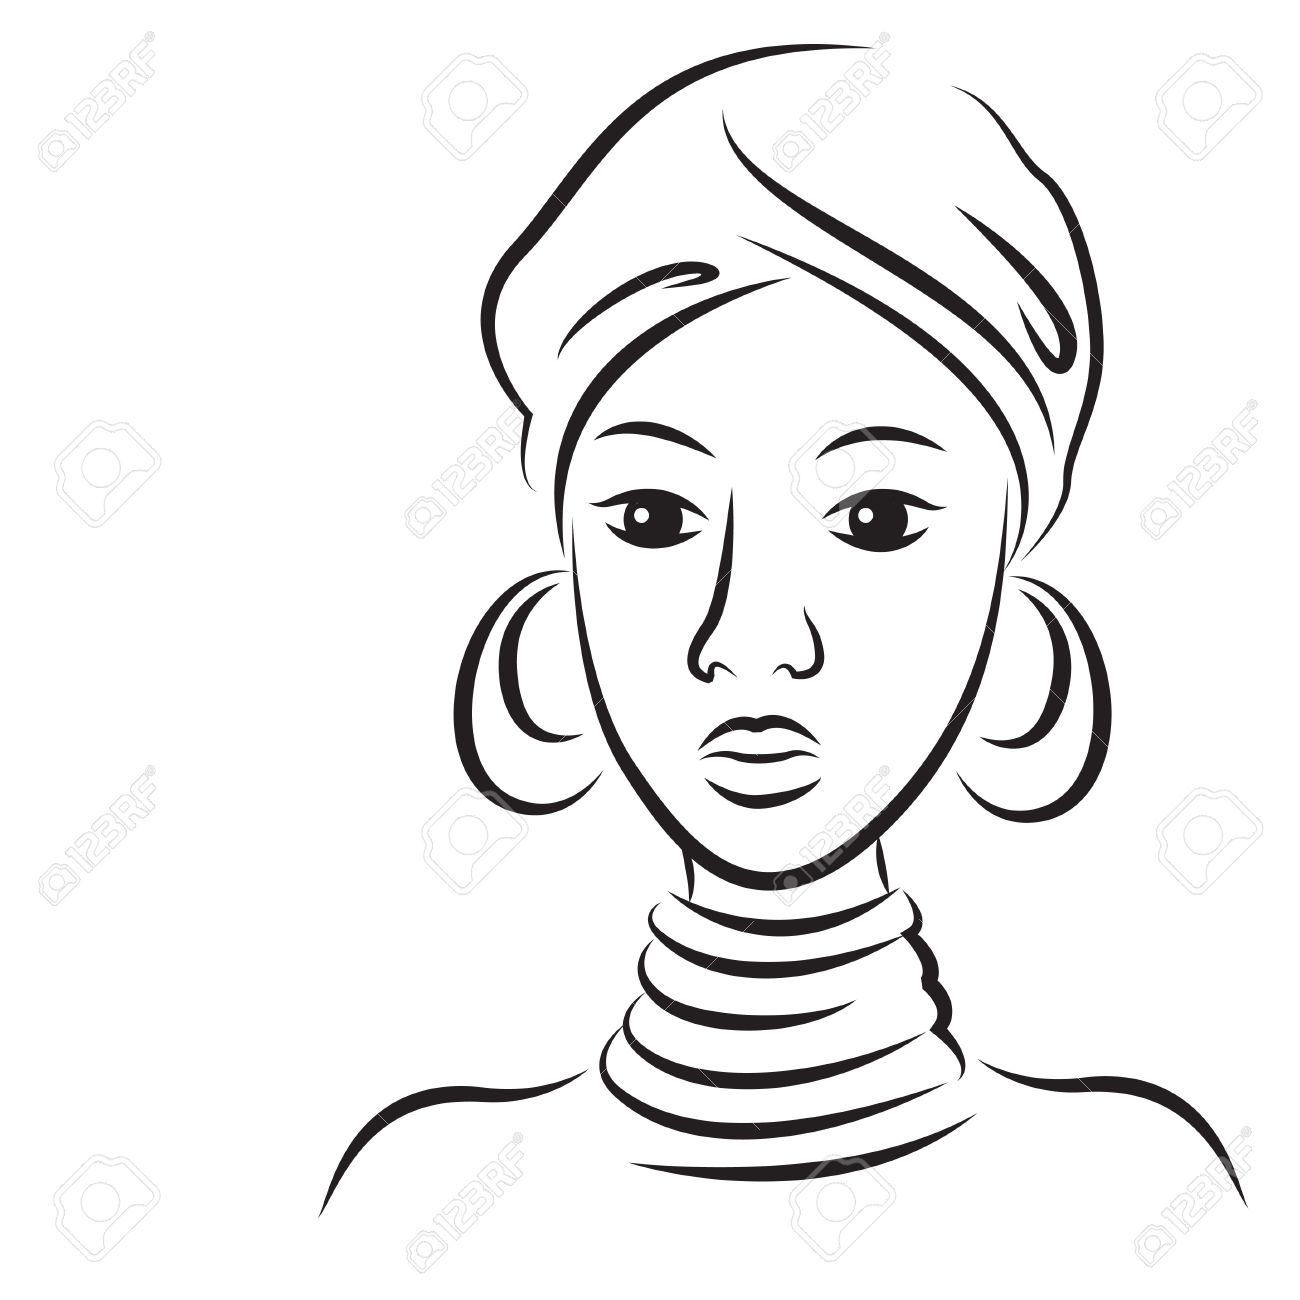 Sketch of young beautiful African woman illustration isolated on white background Stock Vector - 20361411